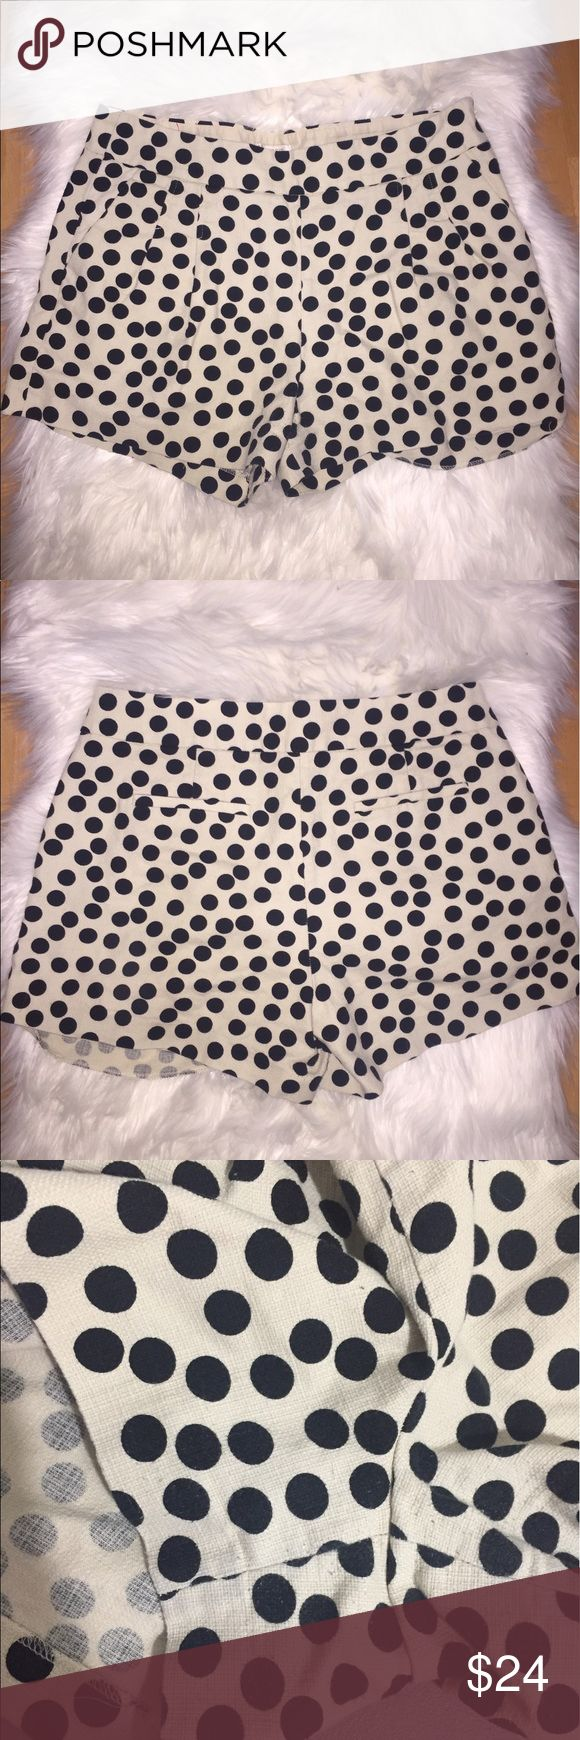 """J.Crew factory cotton Polka dot shorts Size 10. Great condition.Garment is 12.5"""" long. Crotch from hem is 11"""". Waistband 34"""". hips 40"""". Zips up from the left side. Has front and back pockets. Minimal wear on the crotch (refer to last picture). J. Crew Factory Shorts"""